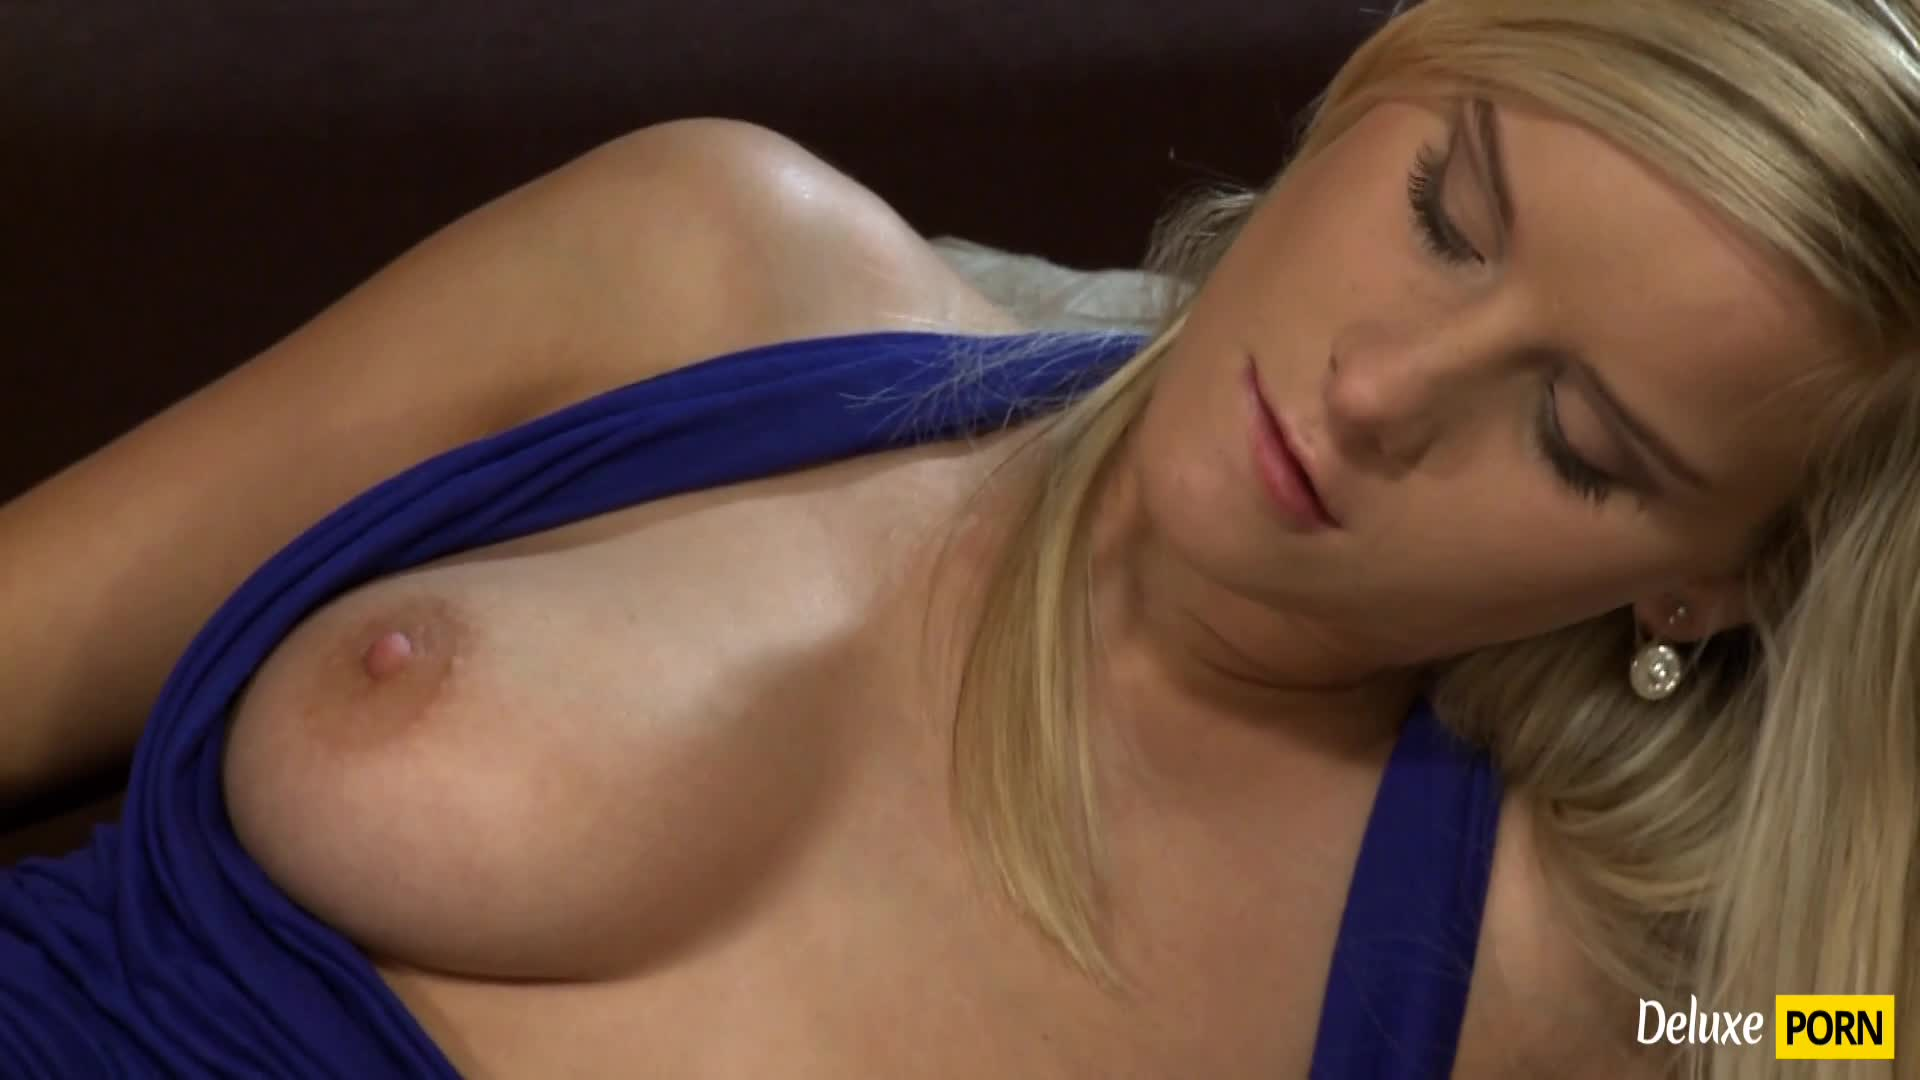 All sex monster cock anal awesome blonde awesome